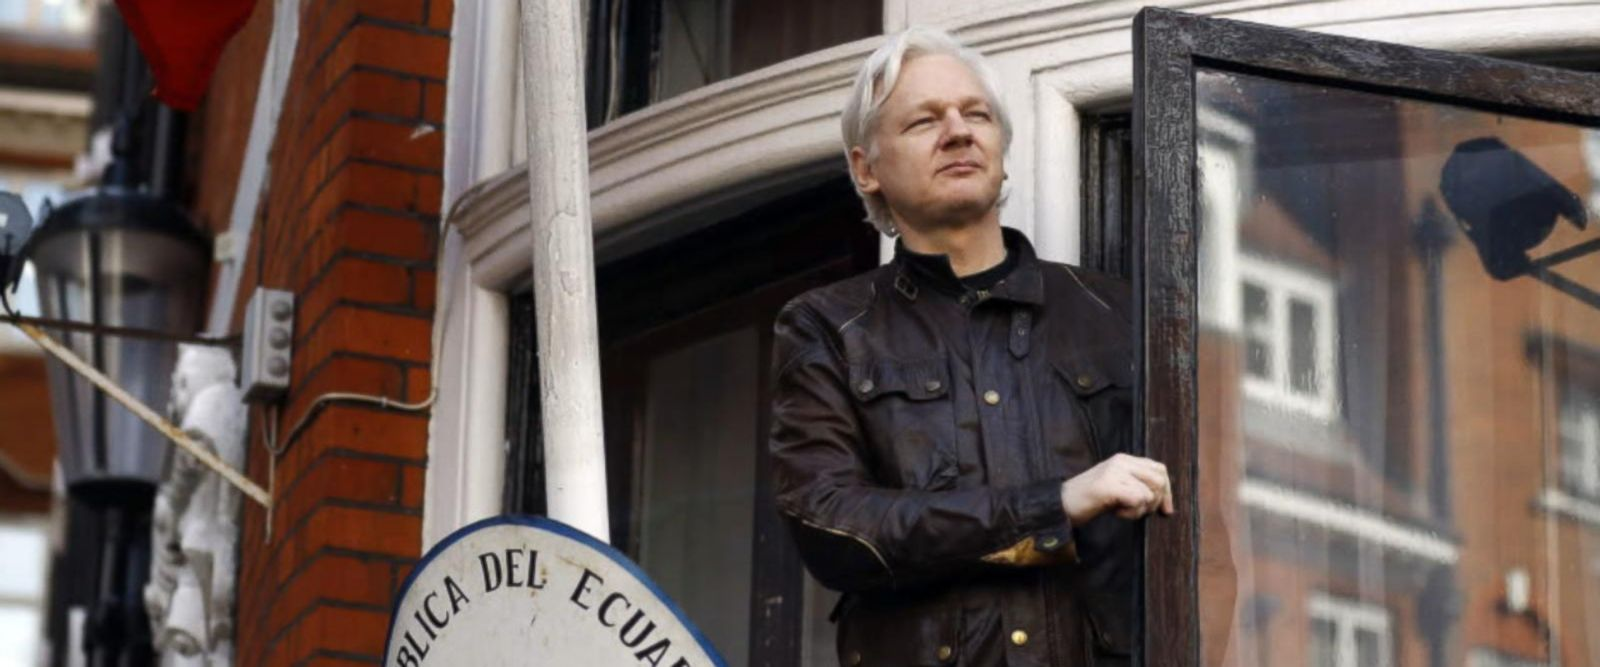 VIDEO: Assange secretly charged by US authorities: Document